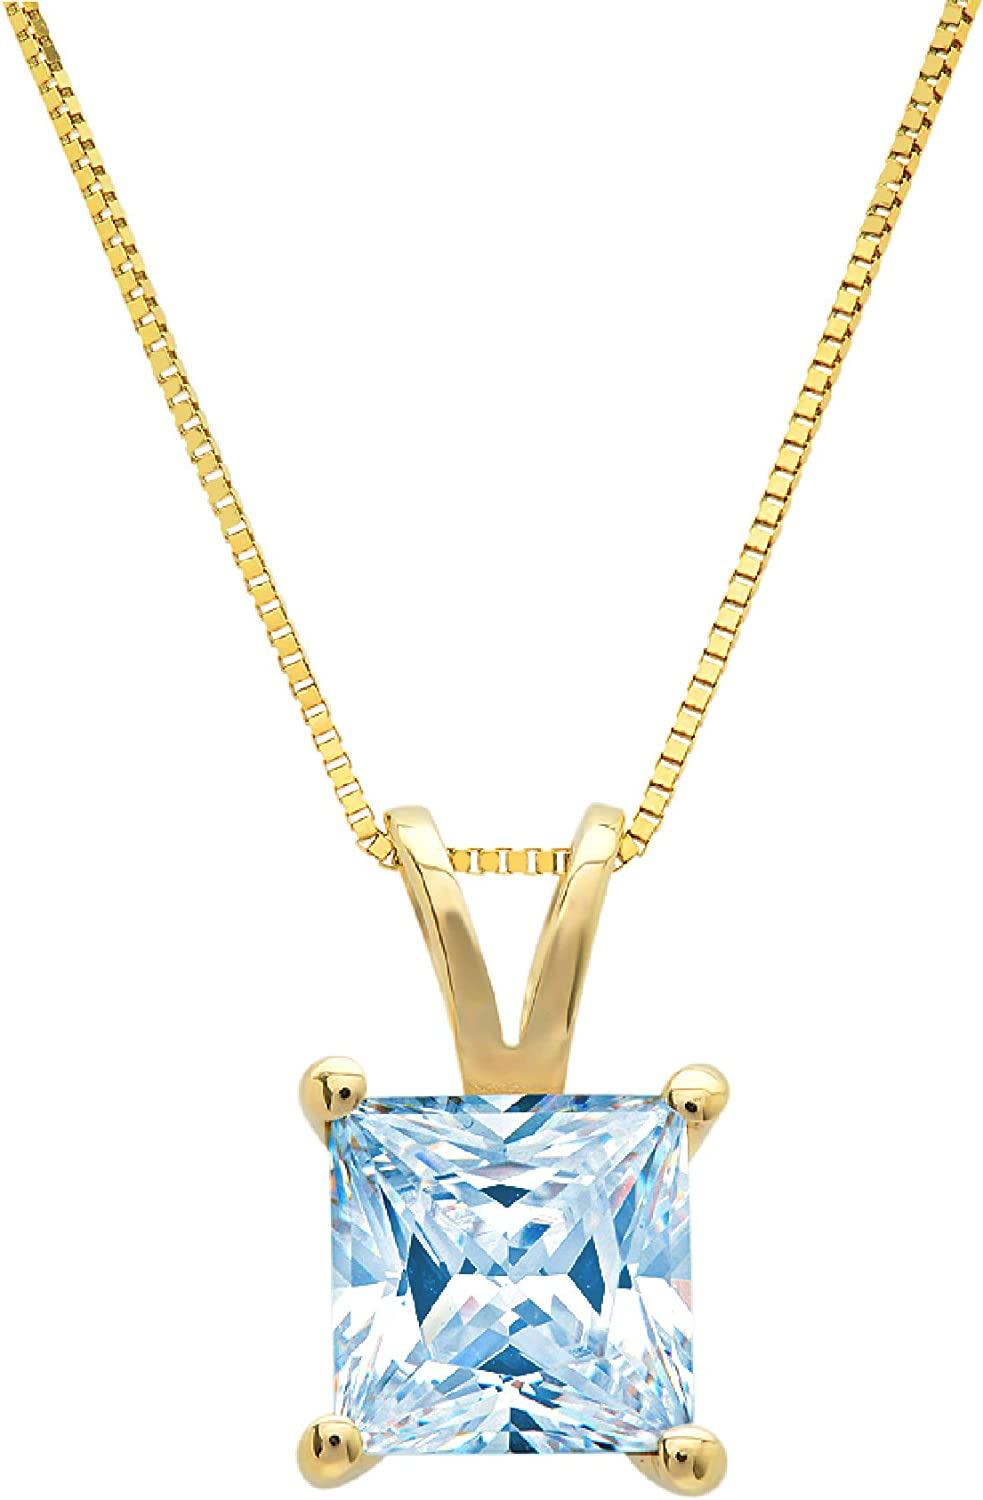 0.50 ct Brilliant Princess Cut Solitaire Designer Genuine Flawless Simulated Blue Sapphire 14K 18K White Gold Pendant with 16 Chain